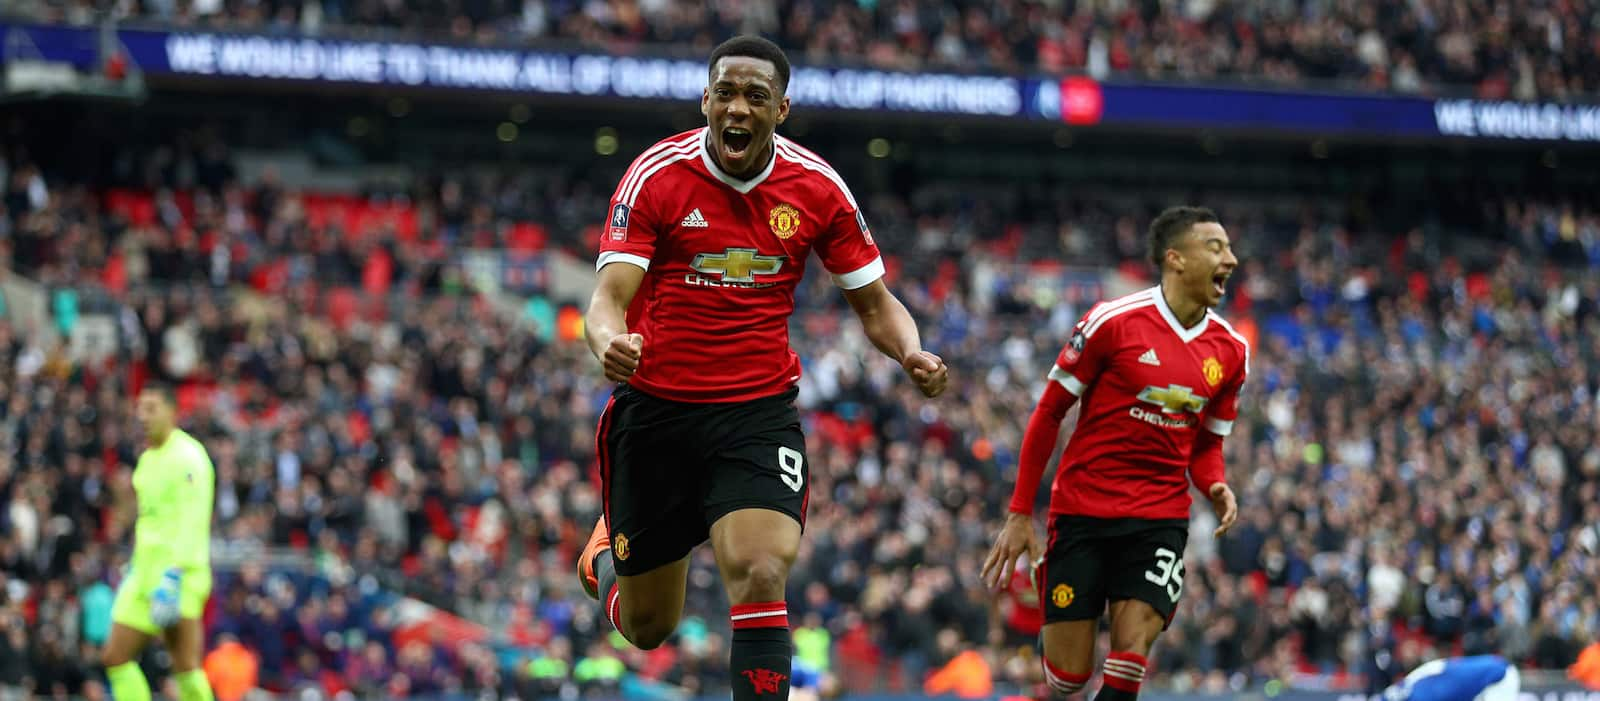 Anthony Martial thanks Man United fans after winner at Wembley